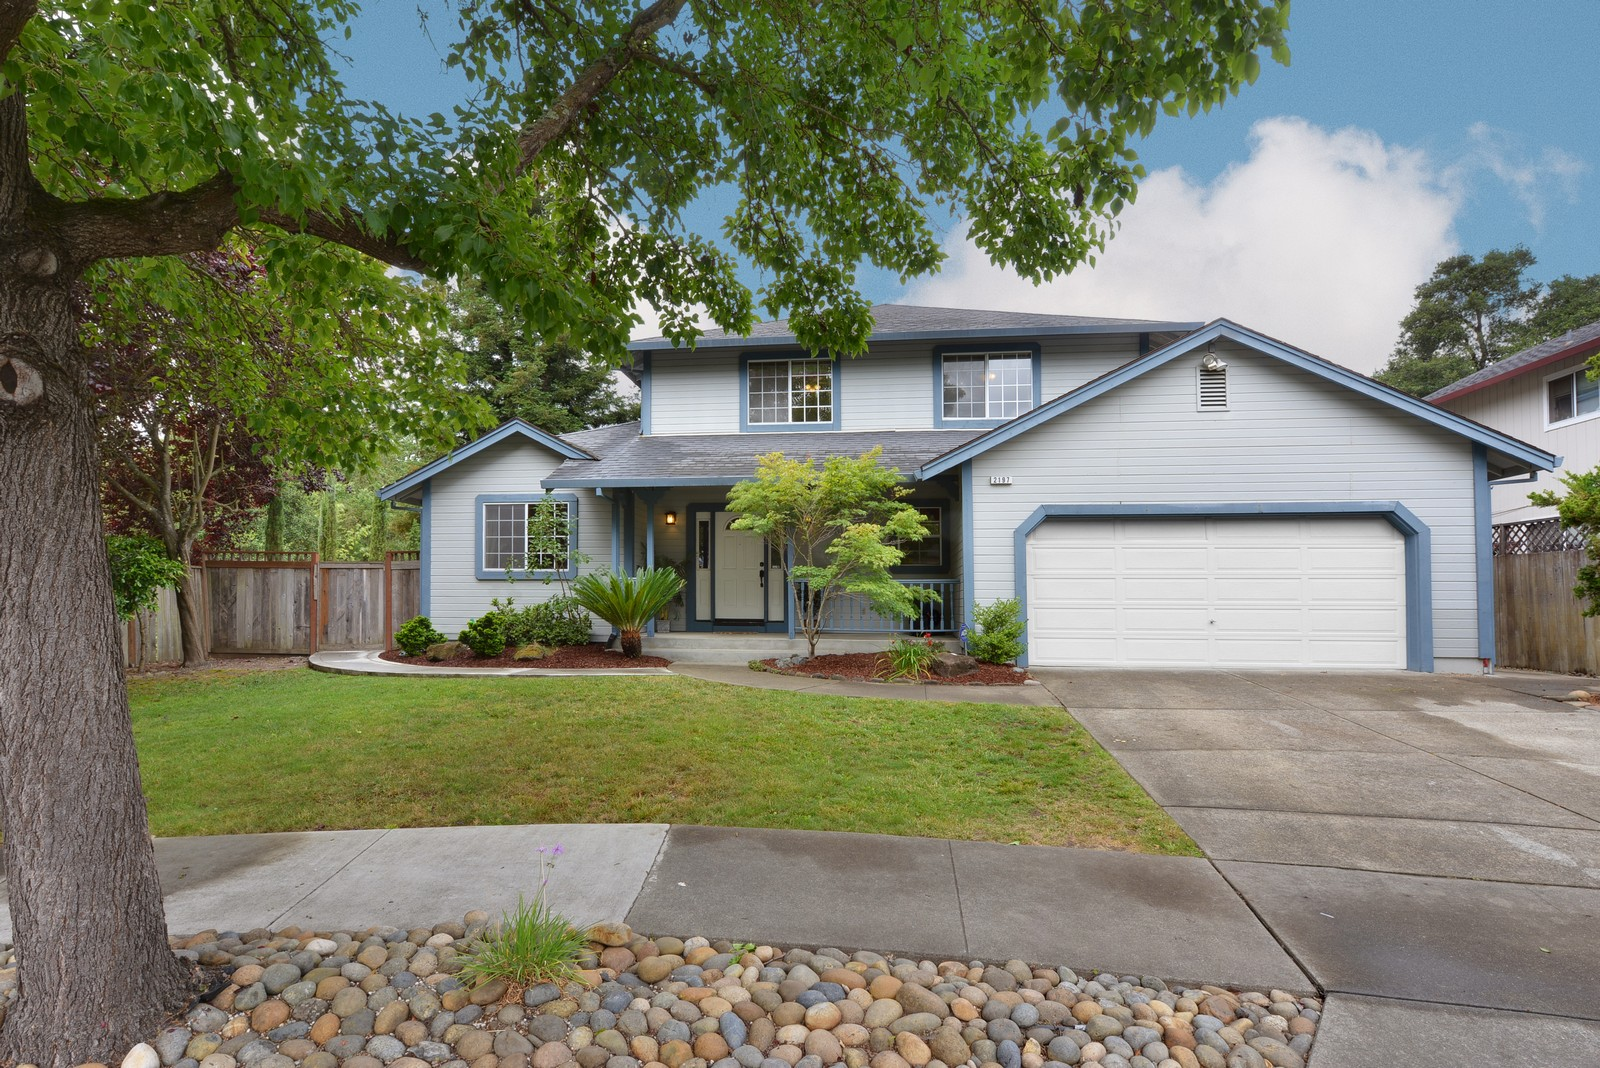 Single Family Home for Sale at 2197 Zinfandel Drive Santa Rosa, California, 95403 United States